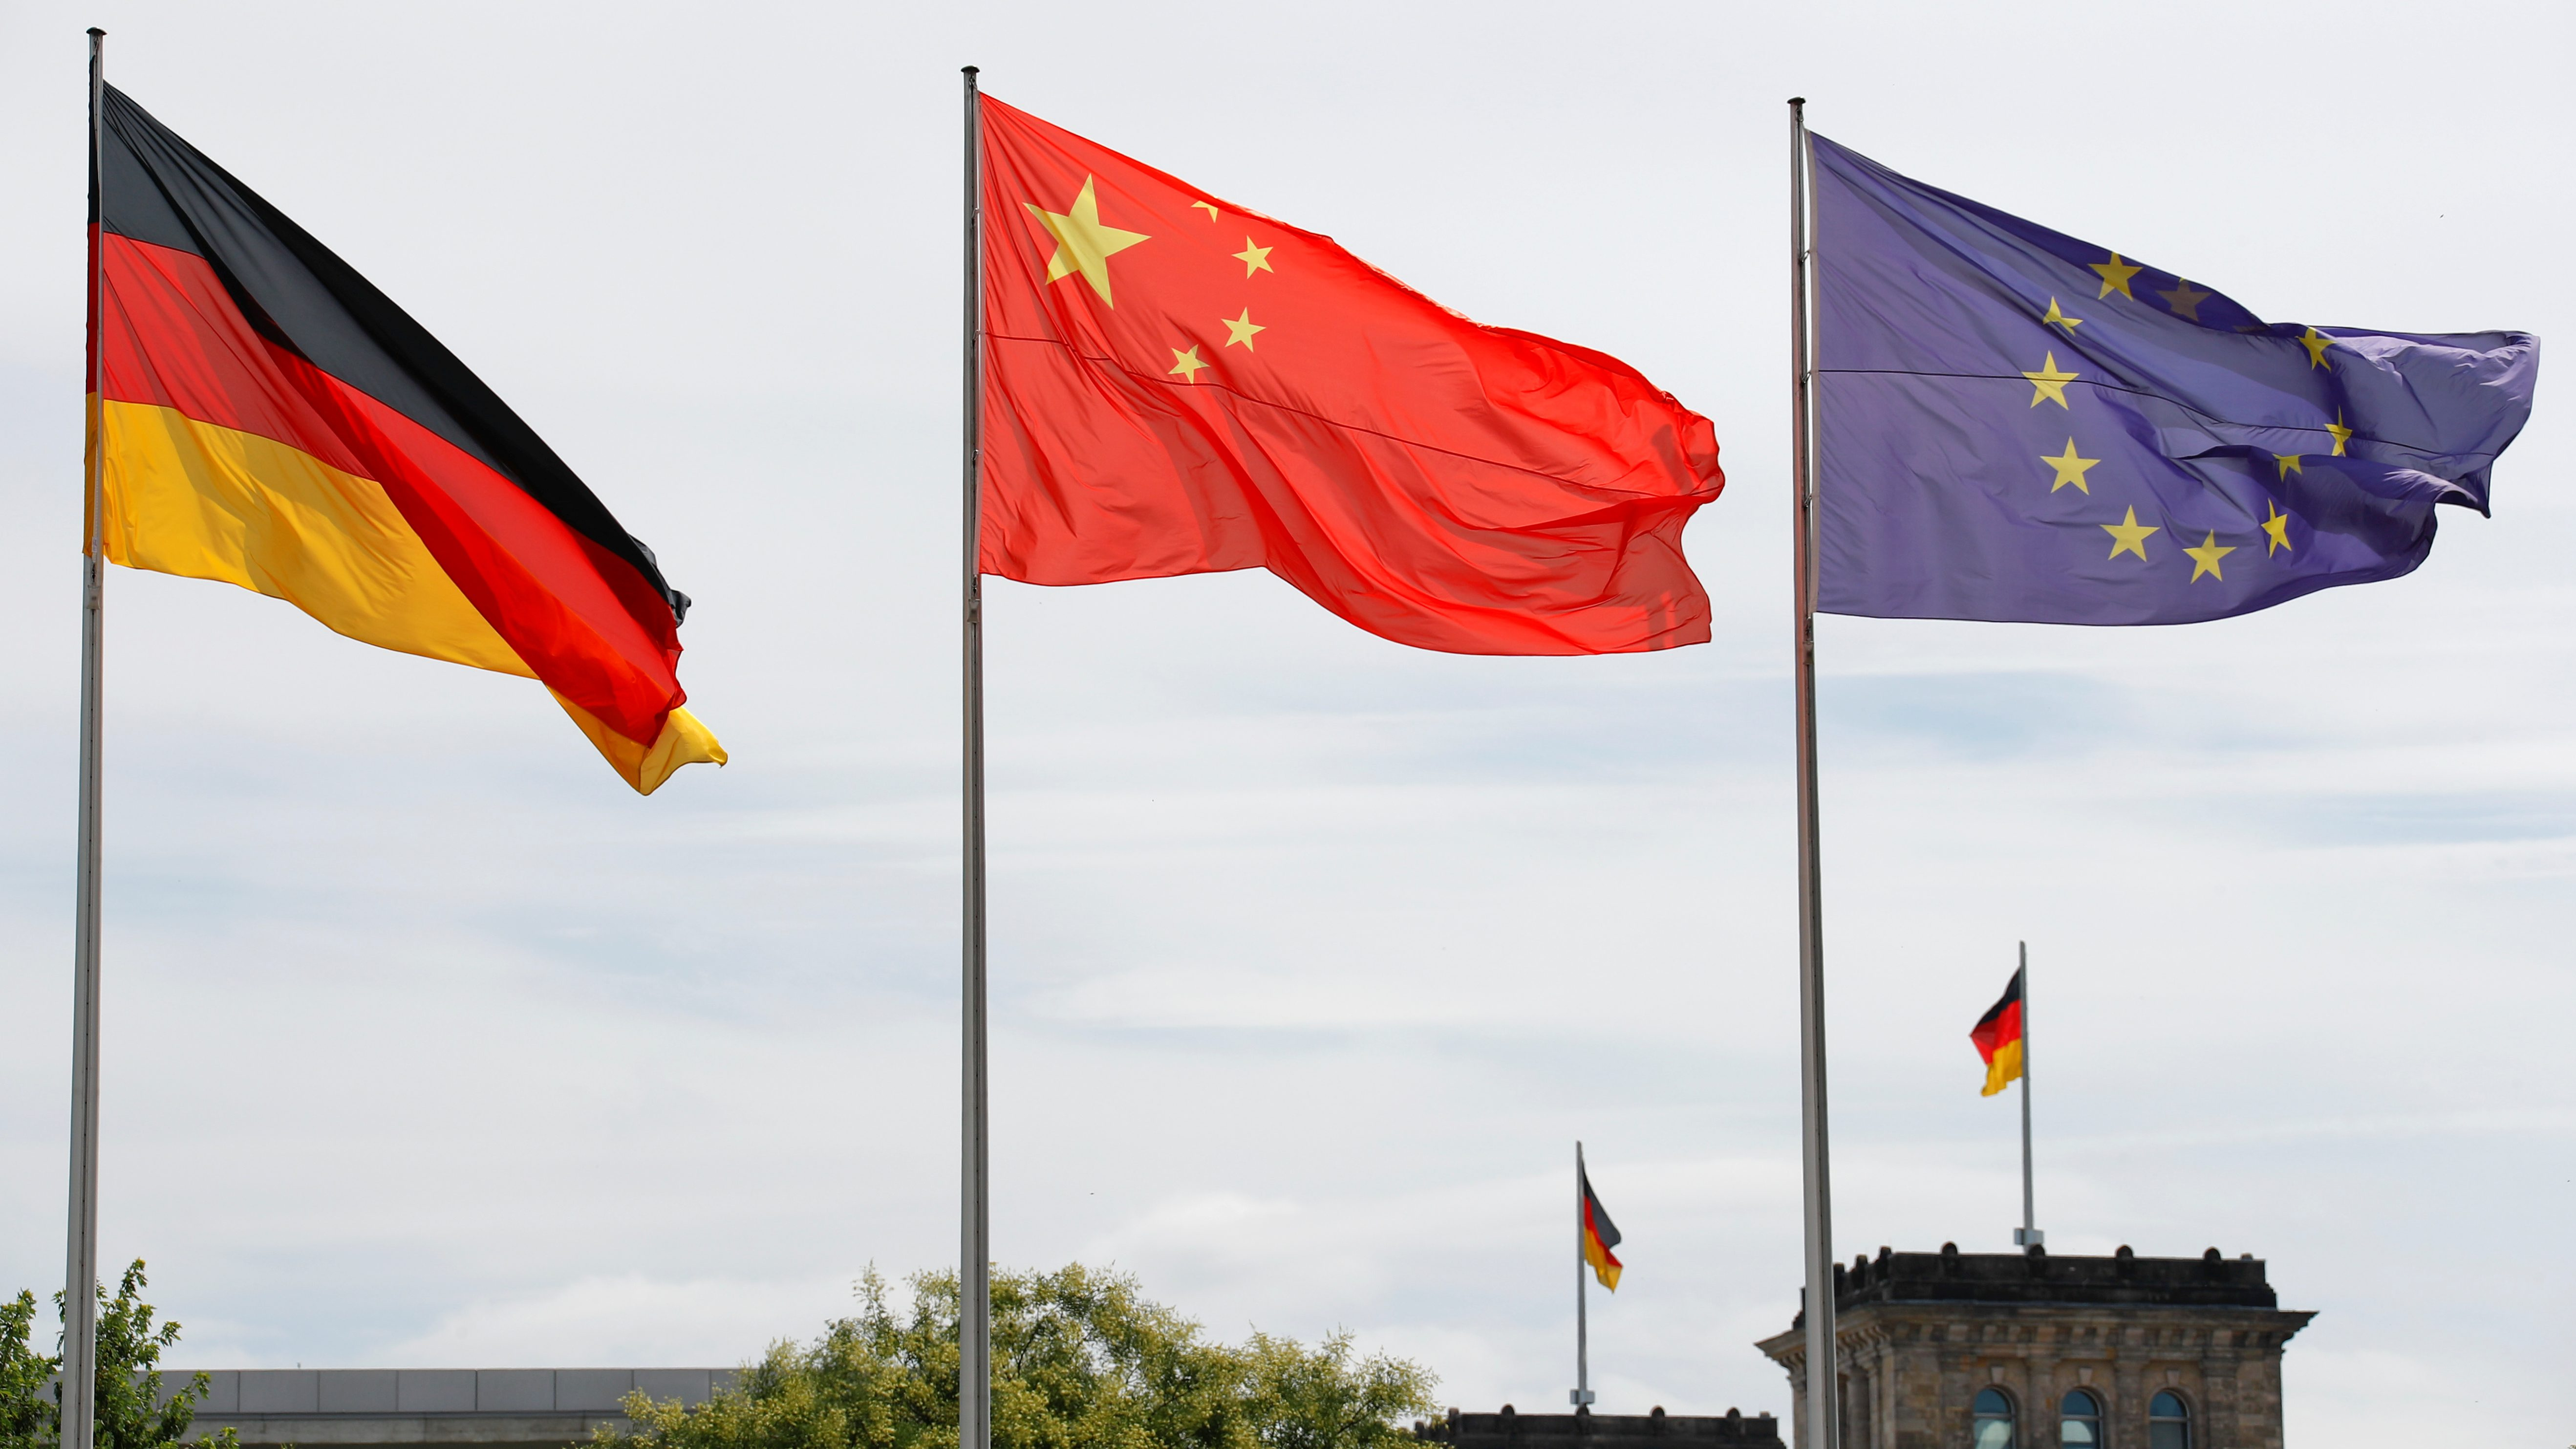 German, Chinese and EU flags